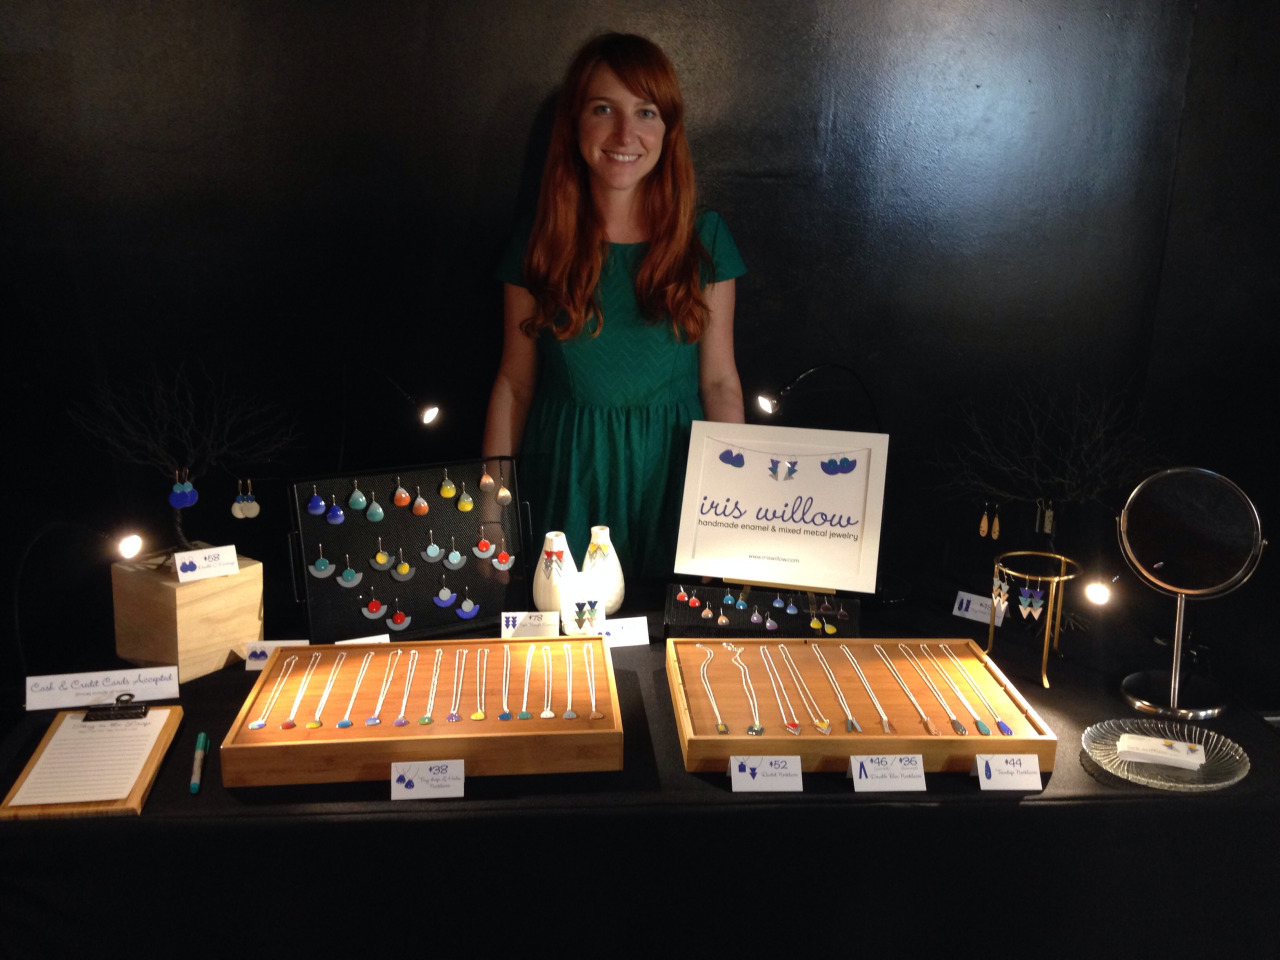 I had a great time last night selling jewelry at Chillin' Productions Anniversary event at the Mezzanine. The place was packed with artists and shoppers alike and had a super fun party vibe with DJs and live painters doing their thing on stage.   It was my first craft show, so I was excited to show off the jewelry displays that'd I'd been working hard on in preparation for the show. I sourced many of my display items from a handful of thrift stores in the Mission. I repurposed two wooden utensil organizers into trays to display my brand new enamel necklaces (coming soon to  my shop ). I also found that mesh office organizers work fantastic as earring holders. I pulled it all together with a couple of super cool wire trees that I bought from an artist selling them on the street back when I lived in Santiago, Chile. They're a tad hard to see in the photo since they blend into the background.    Lighting was something I decided to add last minute, and I'm so glad I did. The space was super dark, so I would have been in a heap of hurt without out the little lamps I added. I was also lucky to be placed next to a fellow jeweler, Valerie Preston of  Valerie Preston Design  who had an amazingly well-lit display to show-off her lovely dream-catcher inspired jewelry. So that, plus my little lamps allowed my jewelry to be seen.    I had a great time at this show and hope to participate in more in the near future. Stay tuned for new dates.